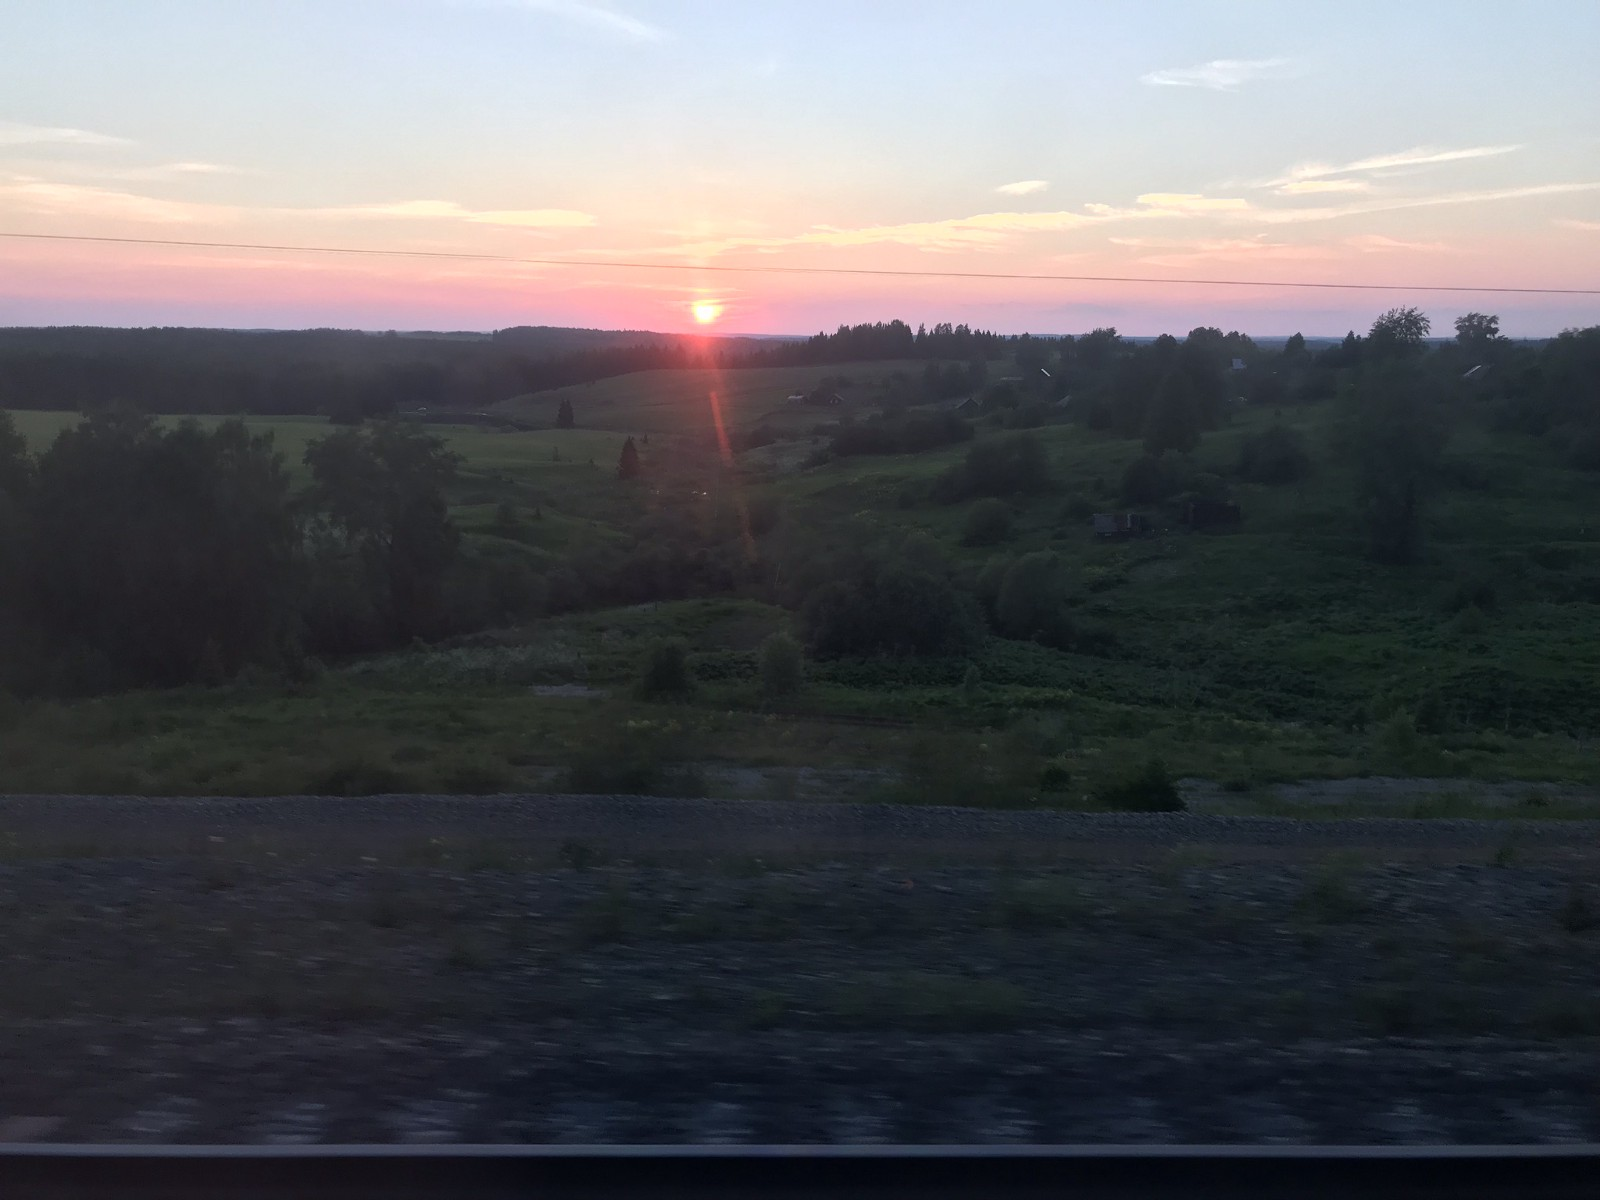 A sunset over hills of Russia, seen through the train's thick windows.